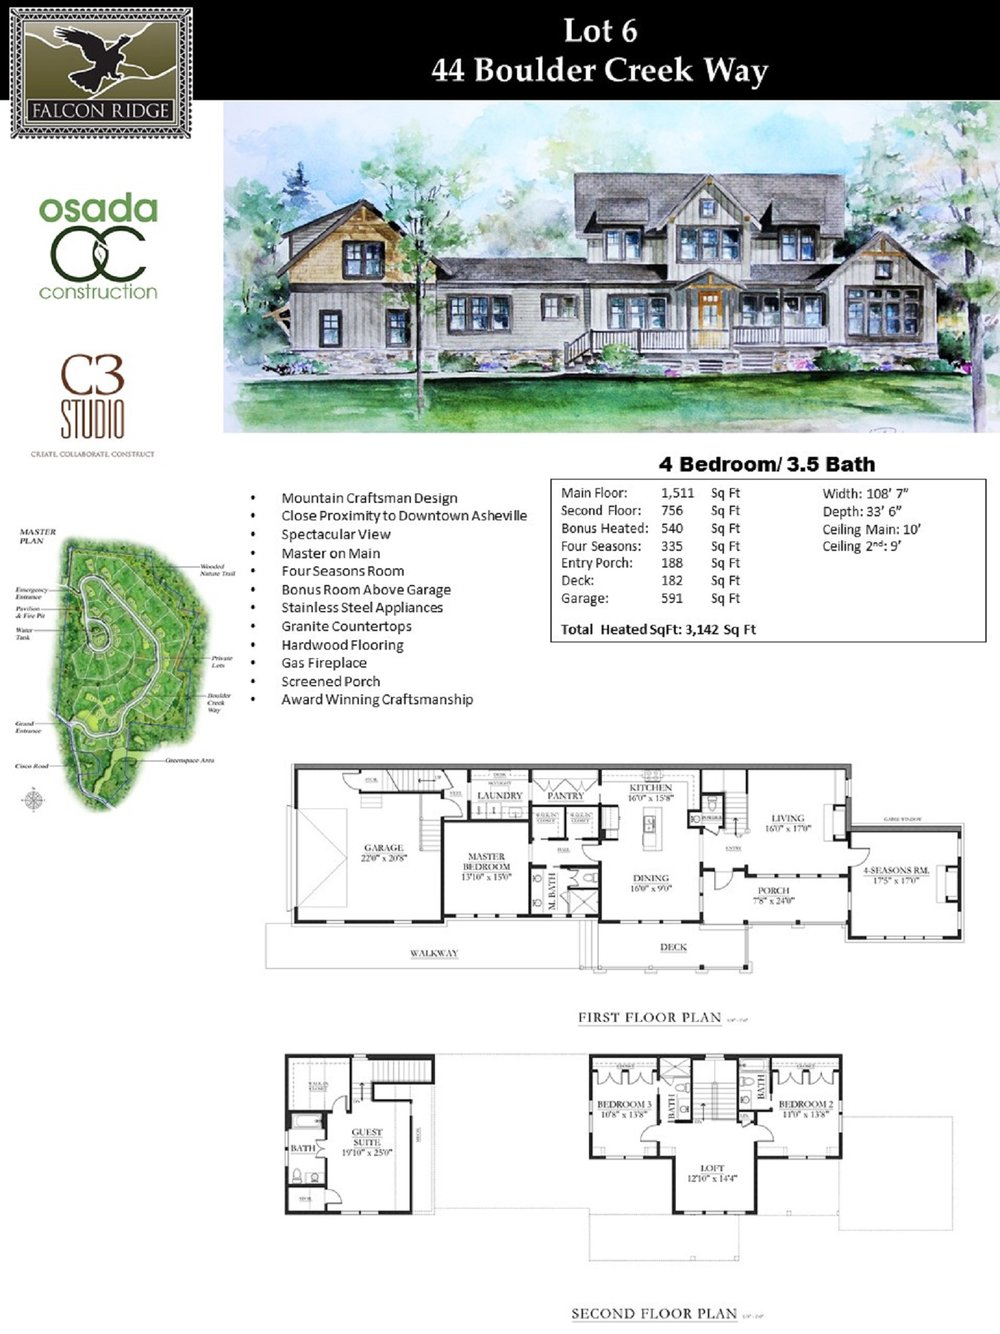 Click floor plan to enlarge.